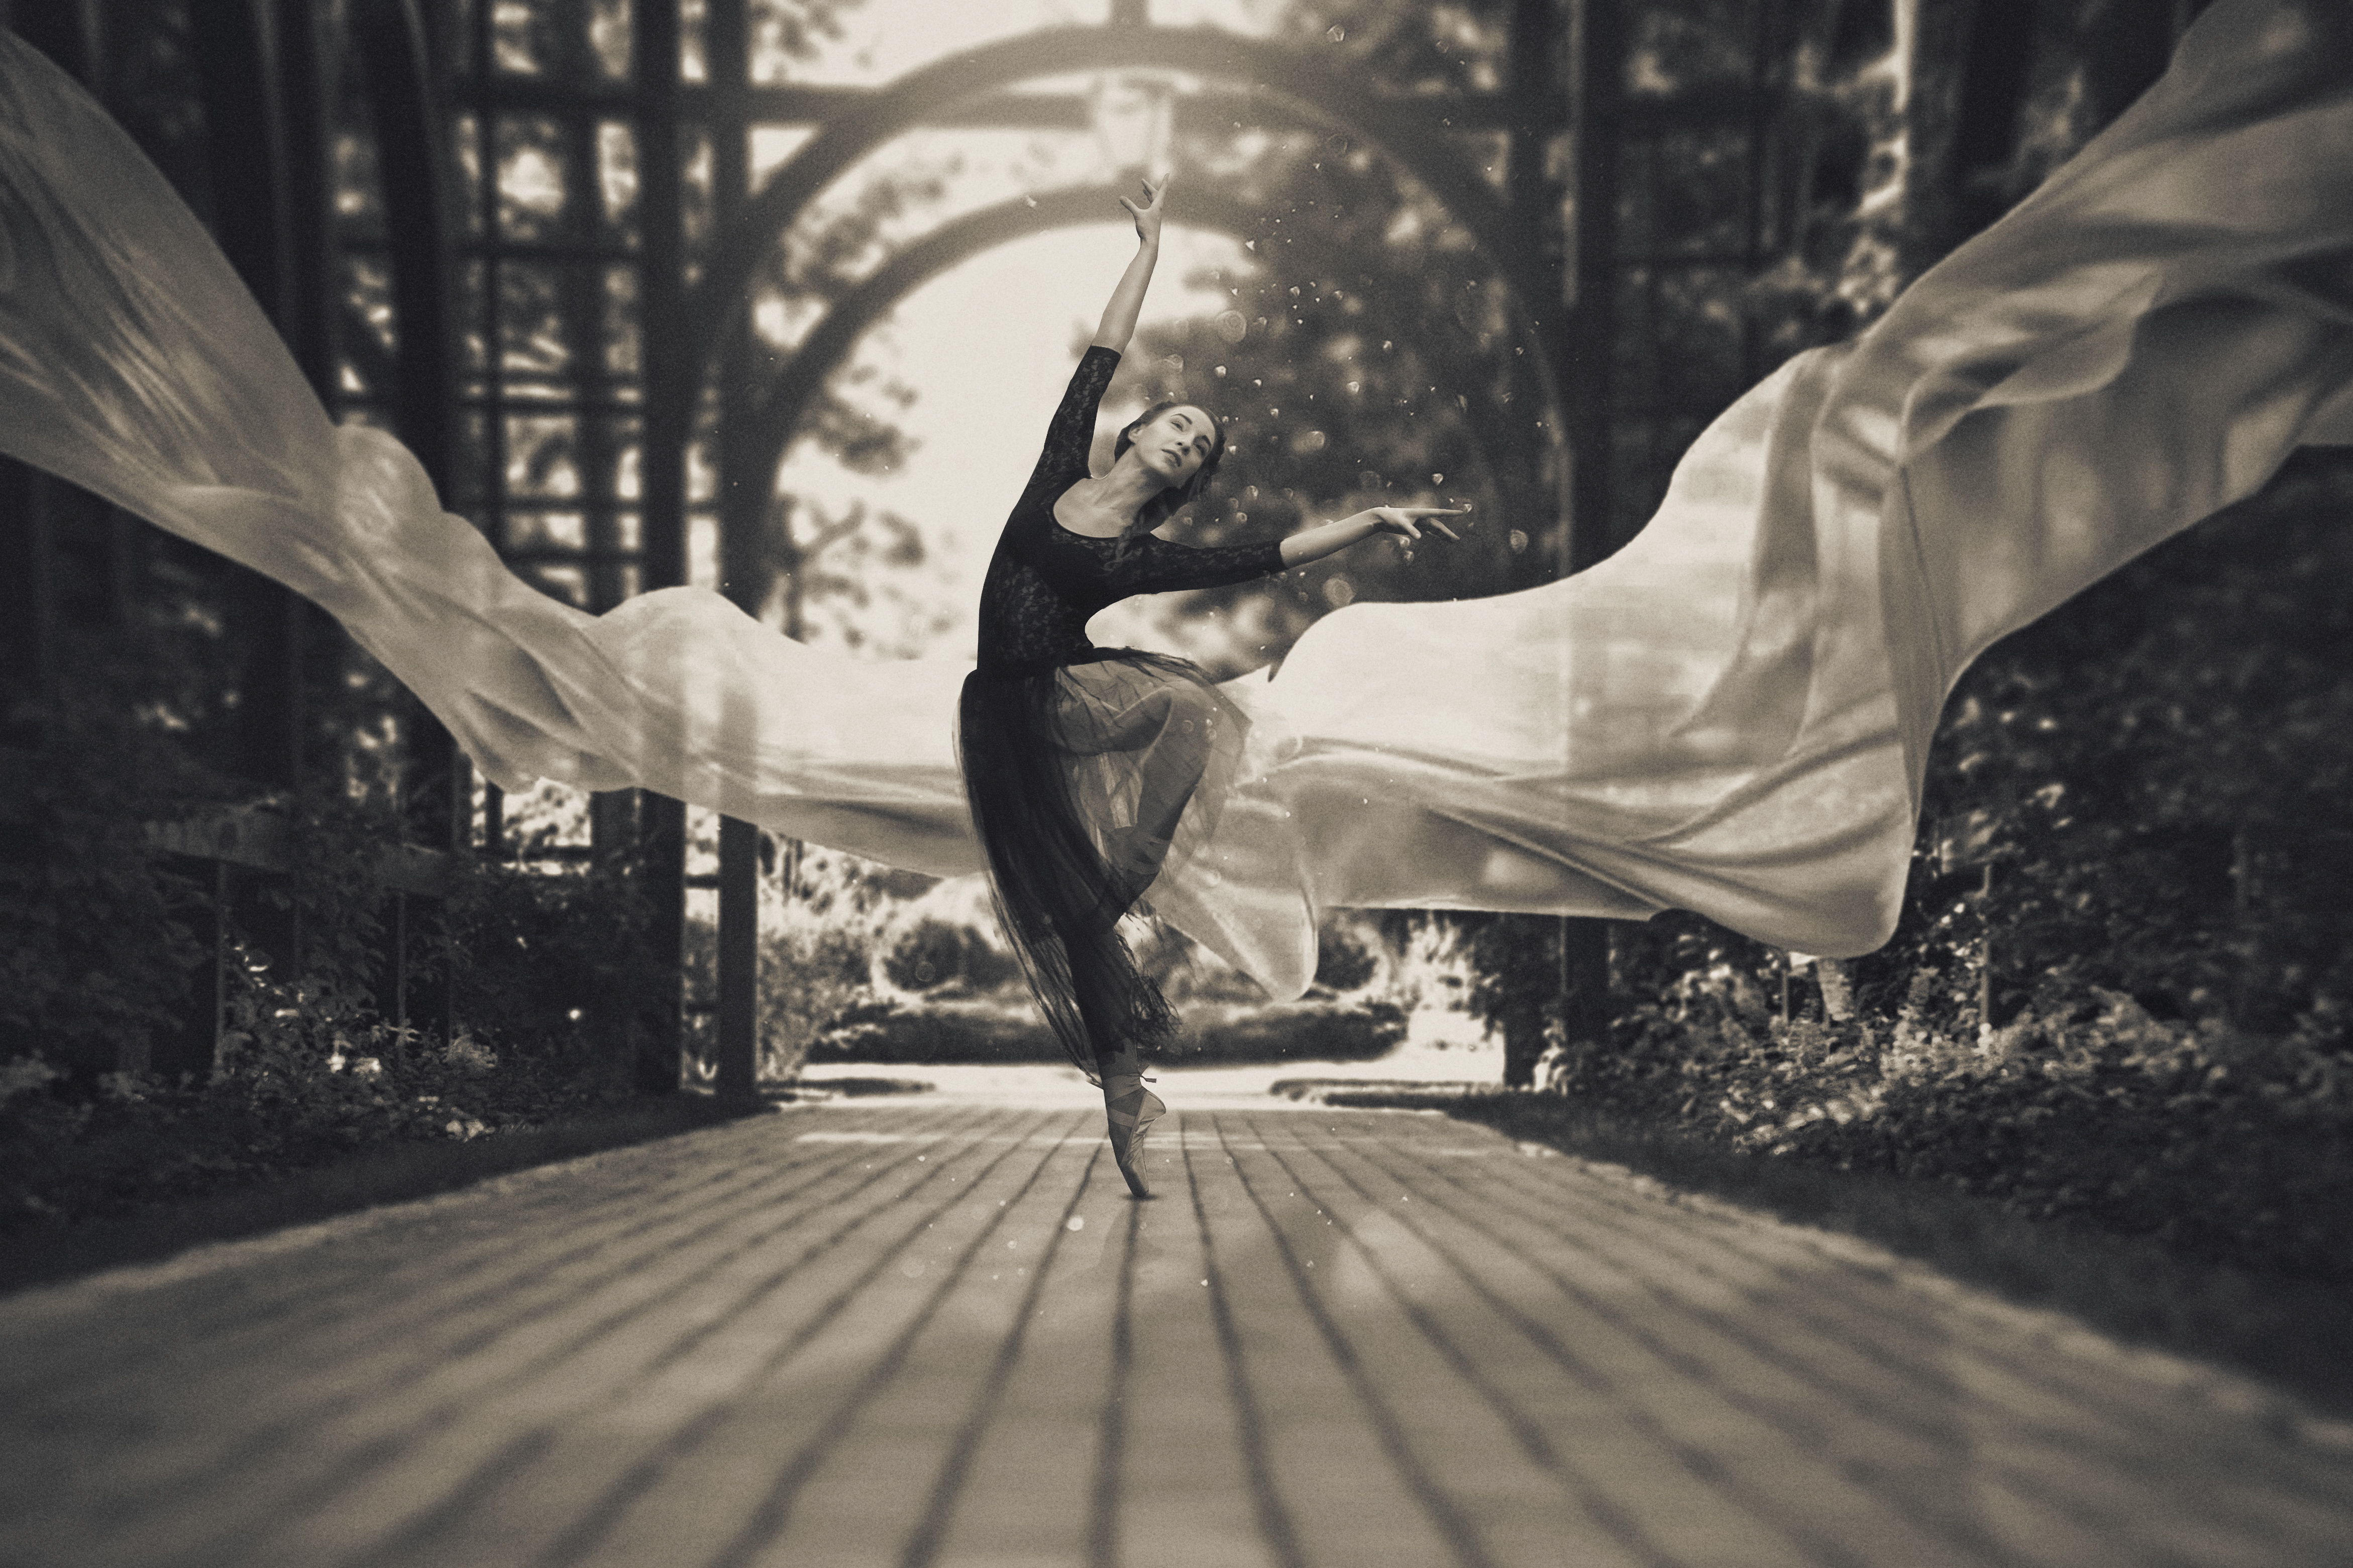 Ballerina out of doors, young modern ballet dancer posing. Black and white photography. The fabric in the air